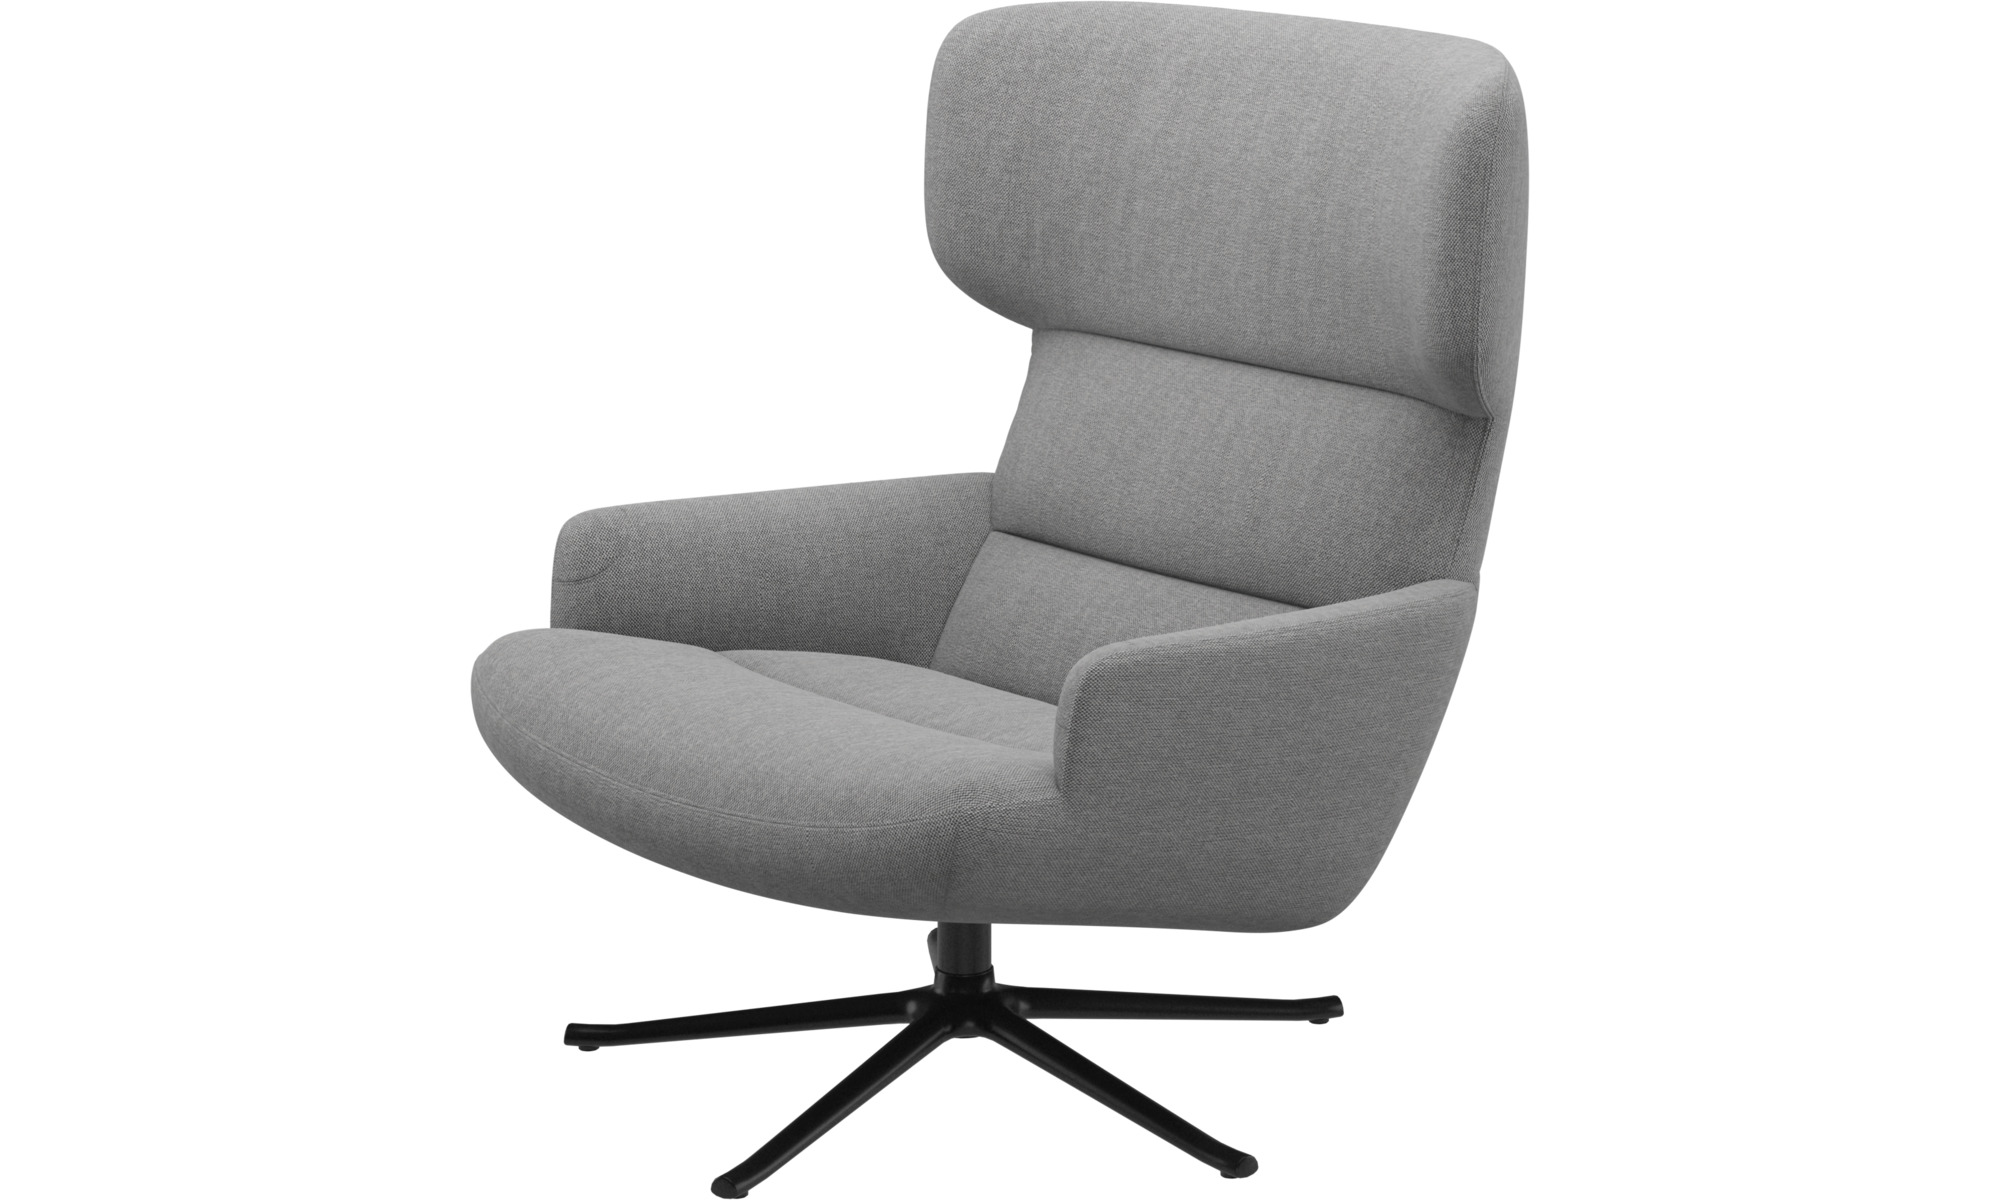 Armchairs - Trento chair with swivel function - Grey - Fabric